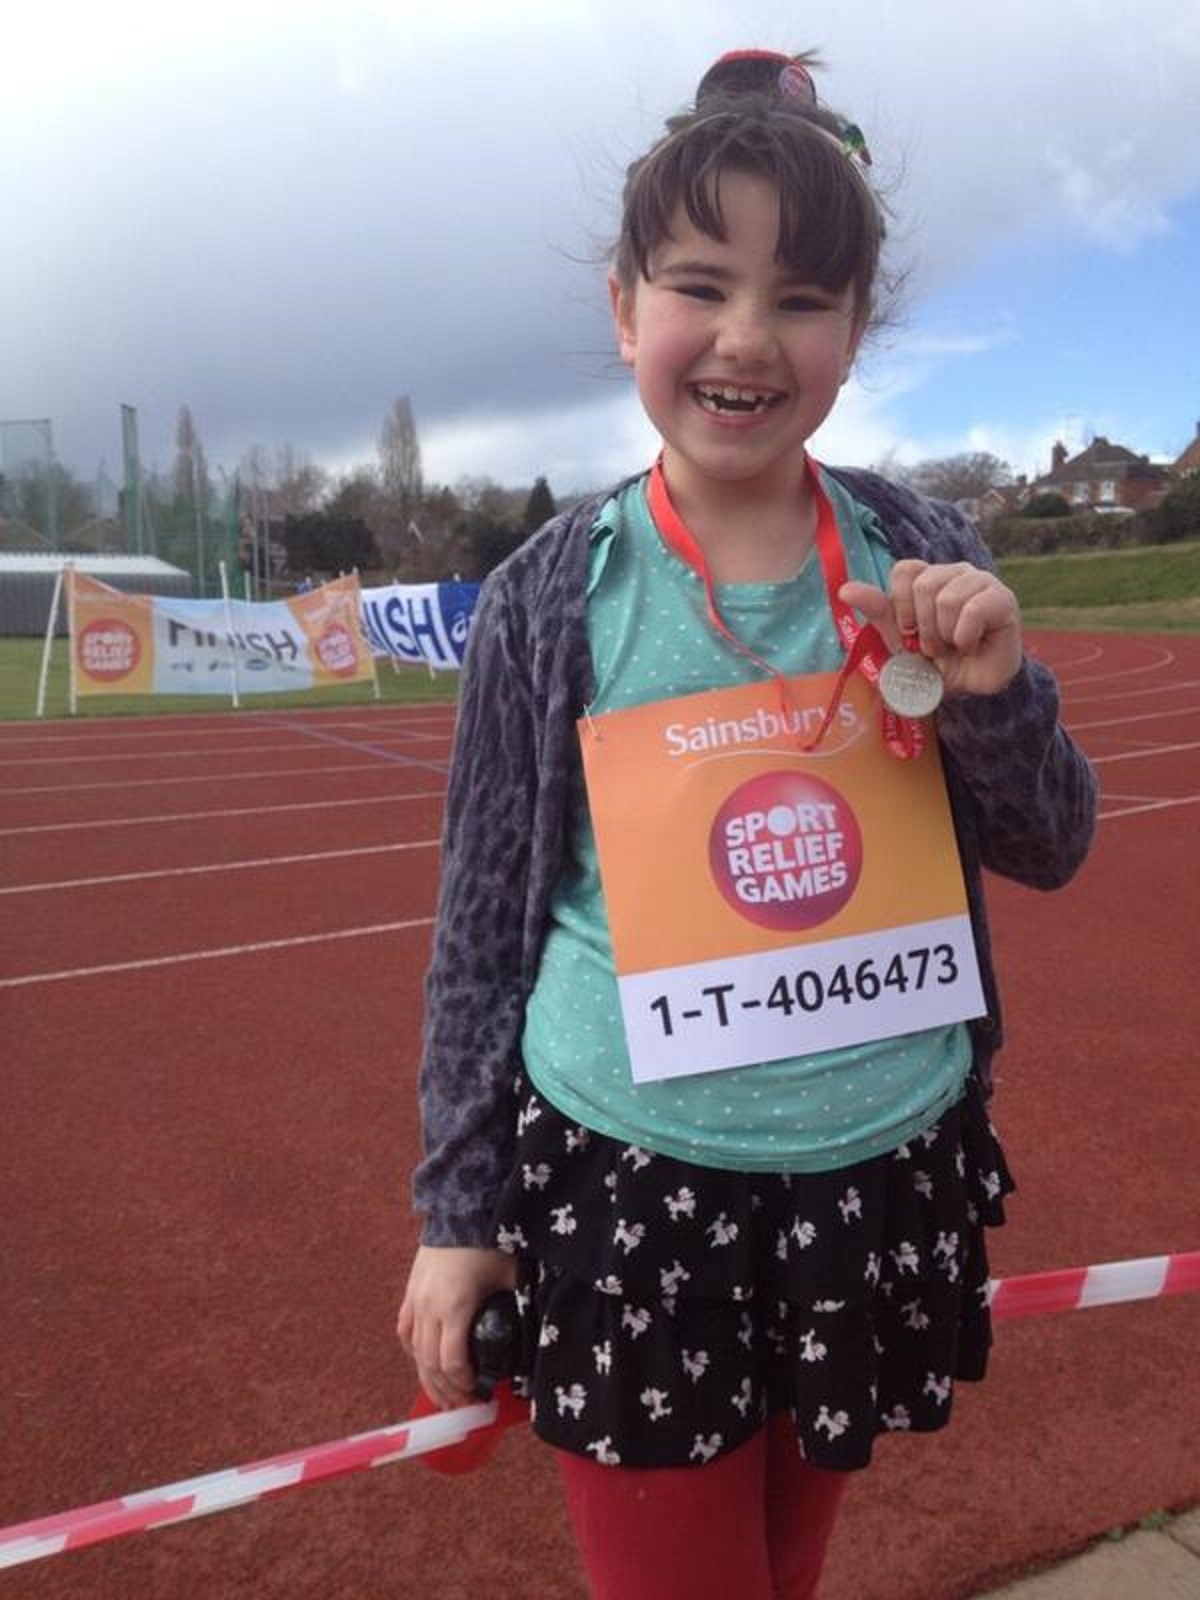 SPORT RELIEF: Bromsgrove youngster Christina De Sousa, aged eight, completed her Sport Relief mile and raised £173.50 for the charity. SP